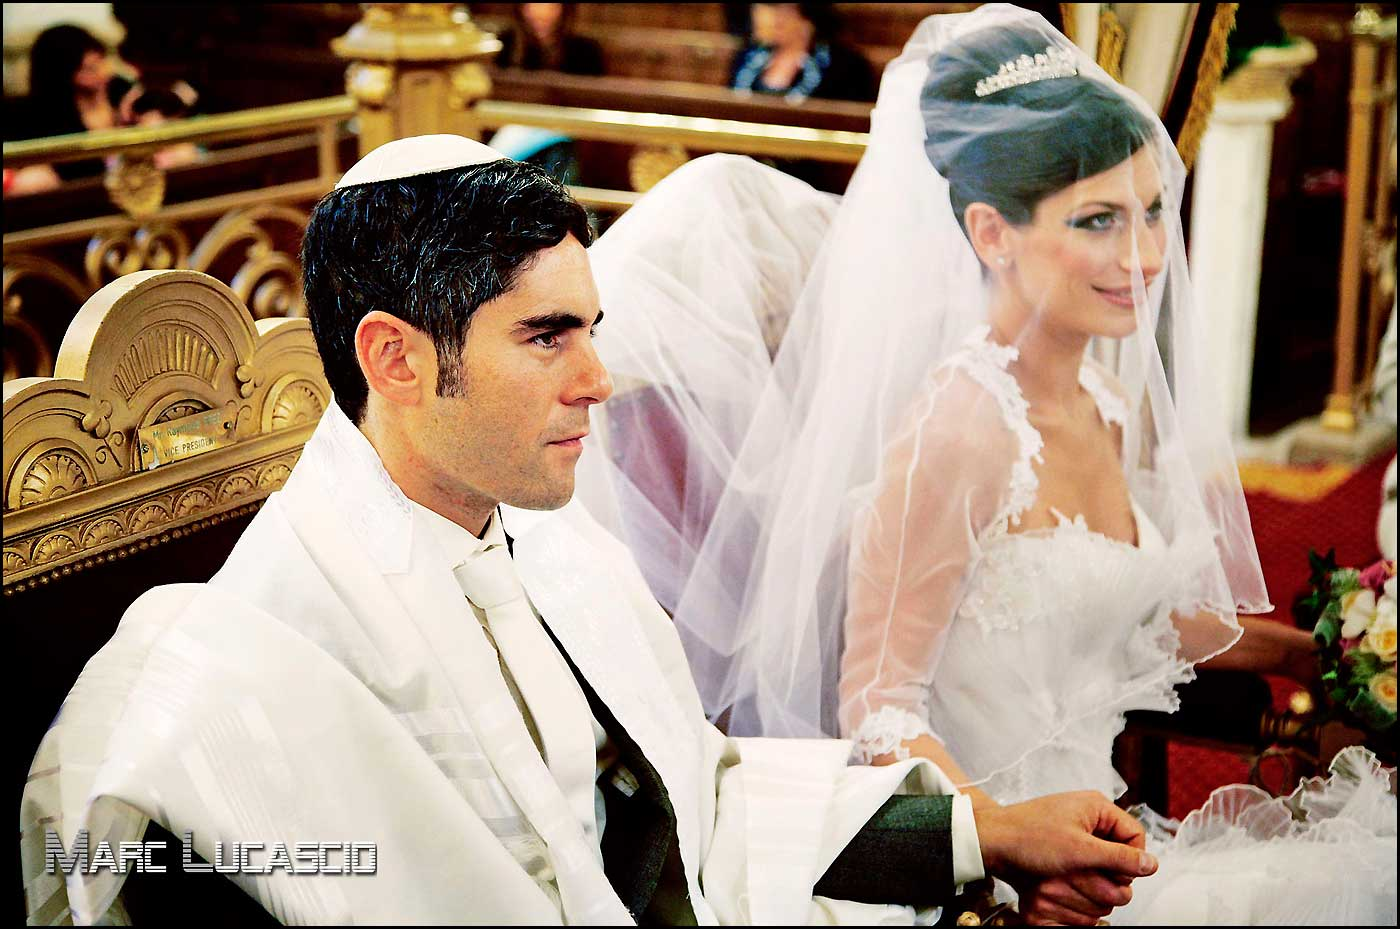 Mariage traditionnelle juif